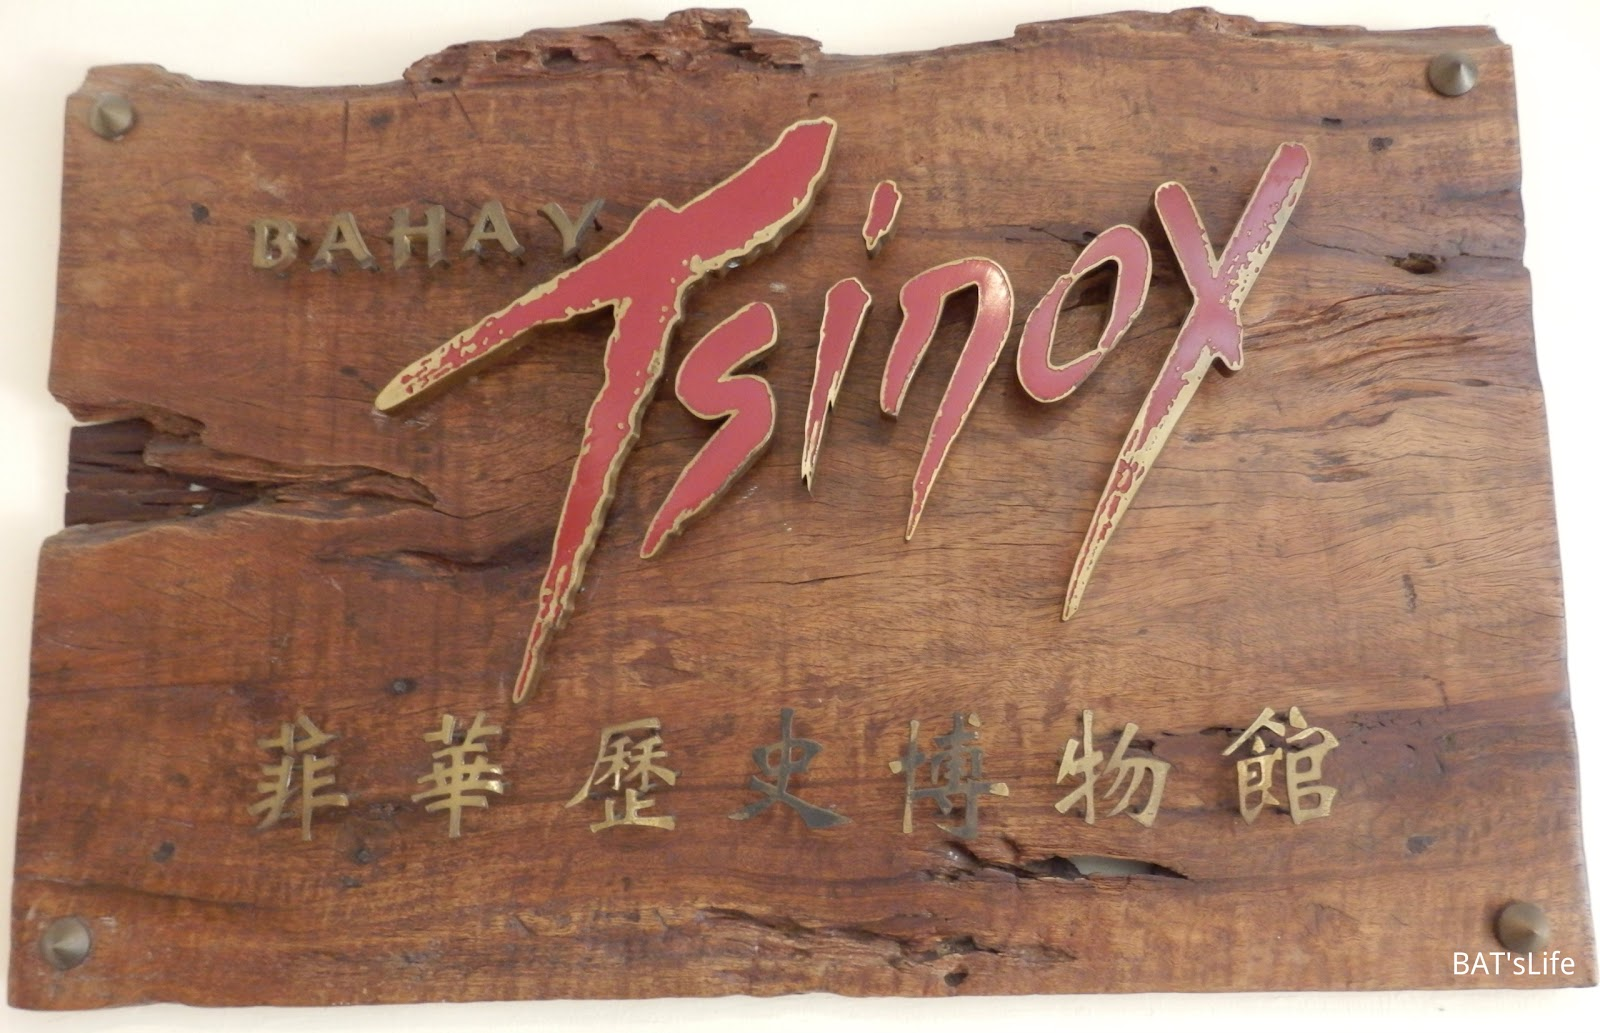 bahay tsinoy 25 best things to do in manila (the philippines) facebook twitter bahay tsinoy as we hinted earlier, there has been chinese community in the philippines since long before the spanish colonial period, and this museum in intramuros records the history.